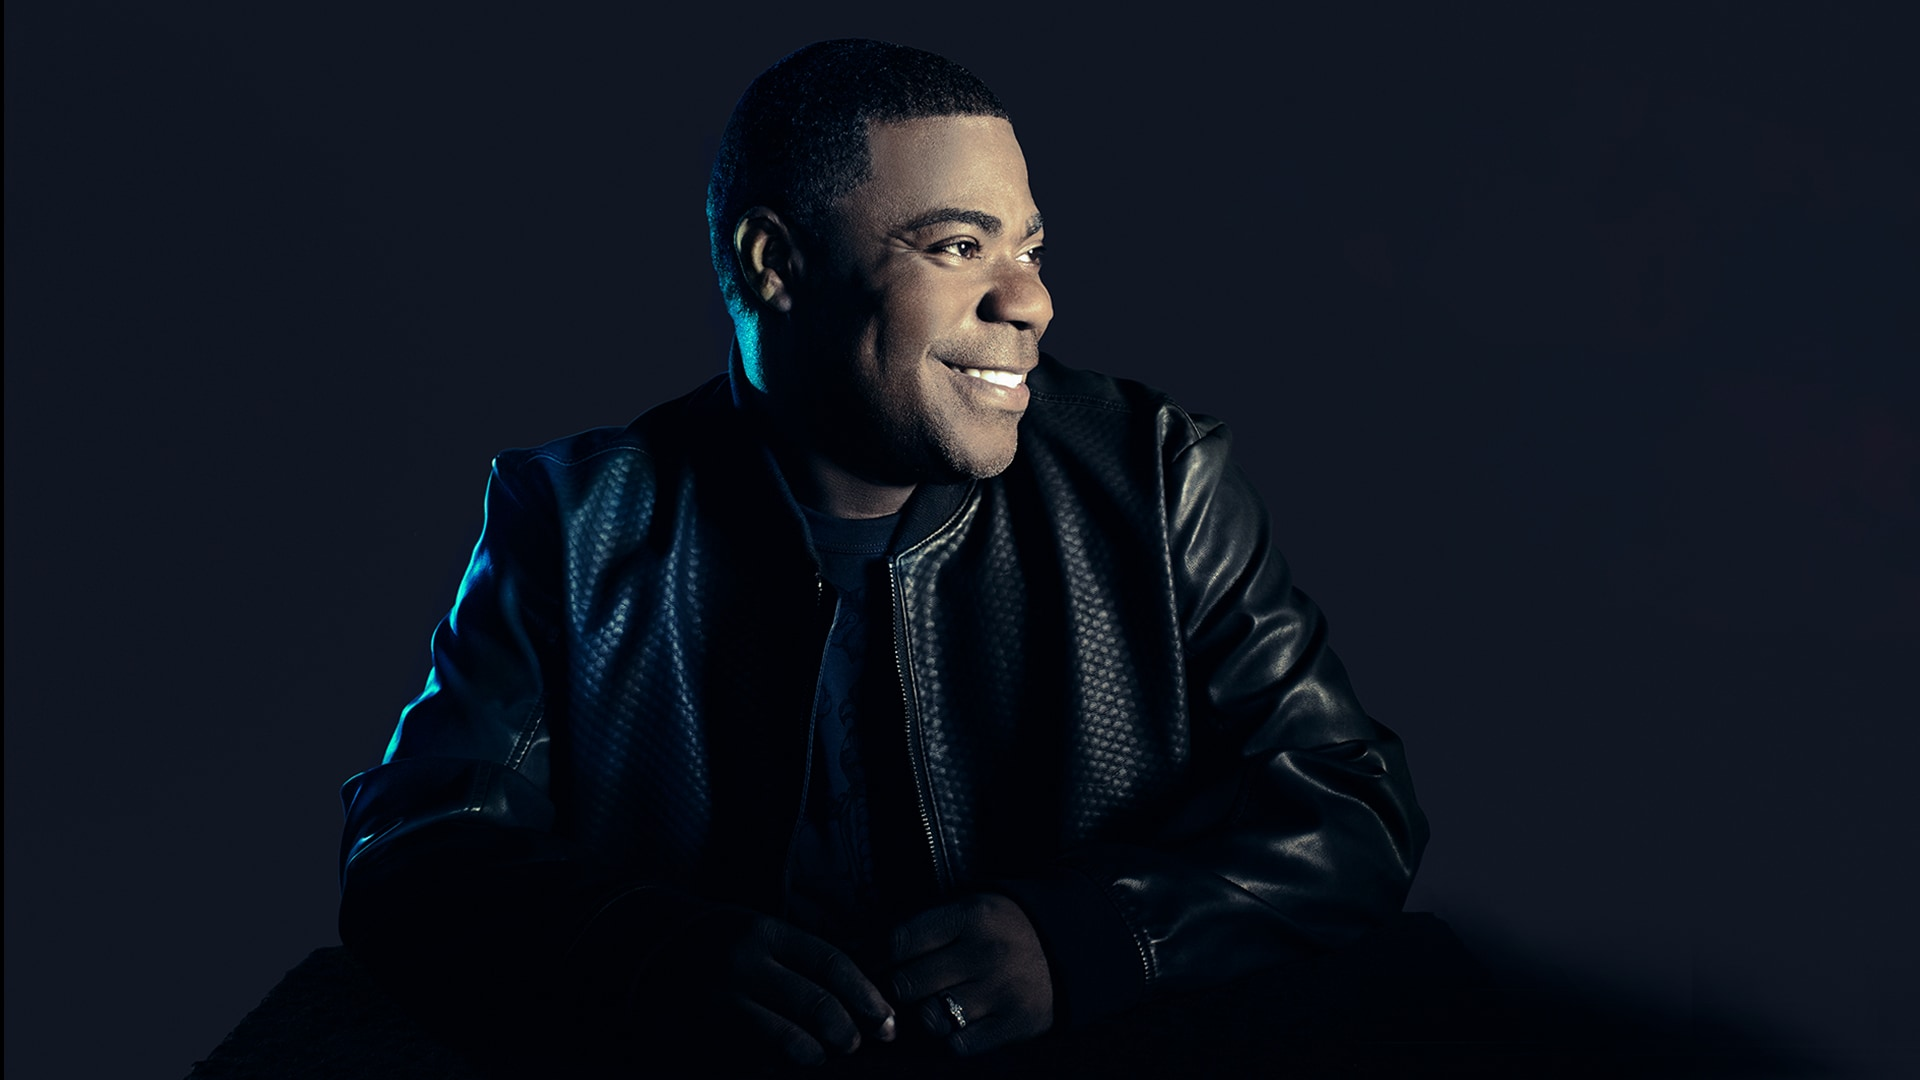 Tracy Morgan: October 17, 2015